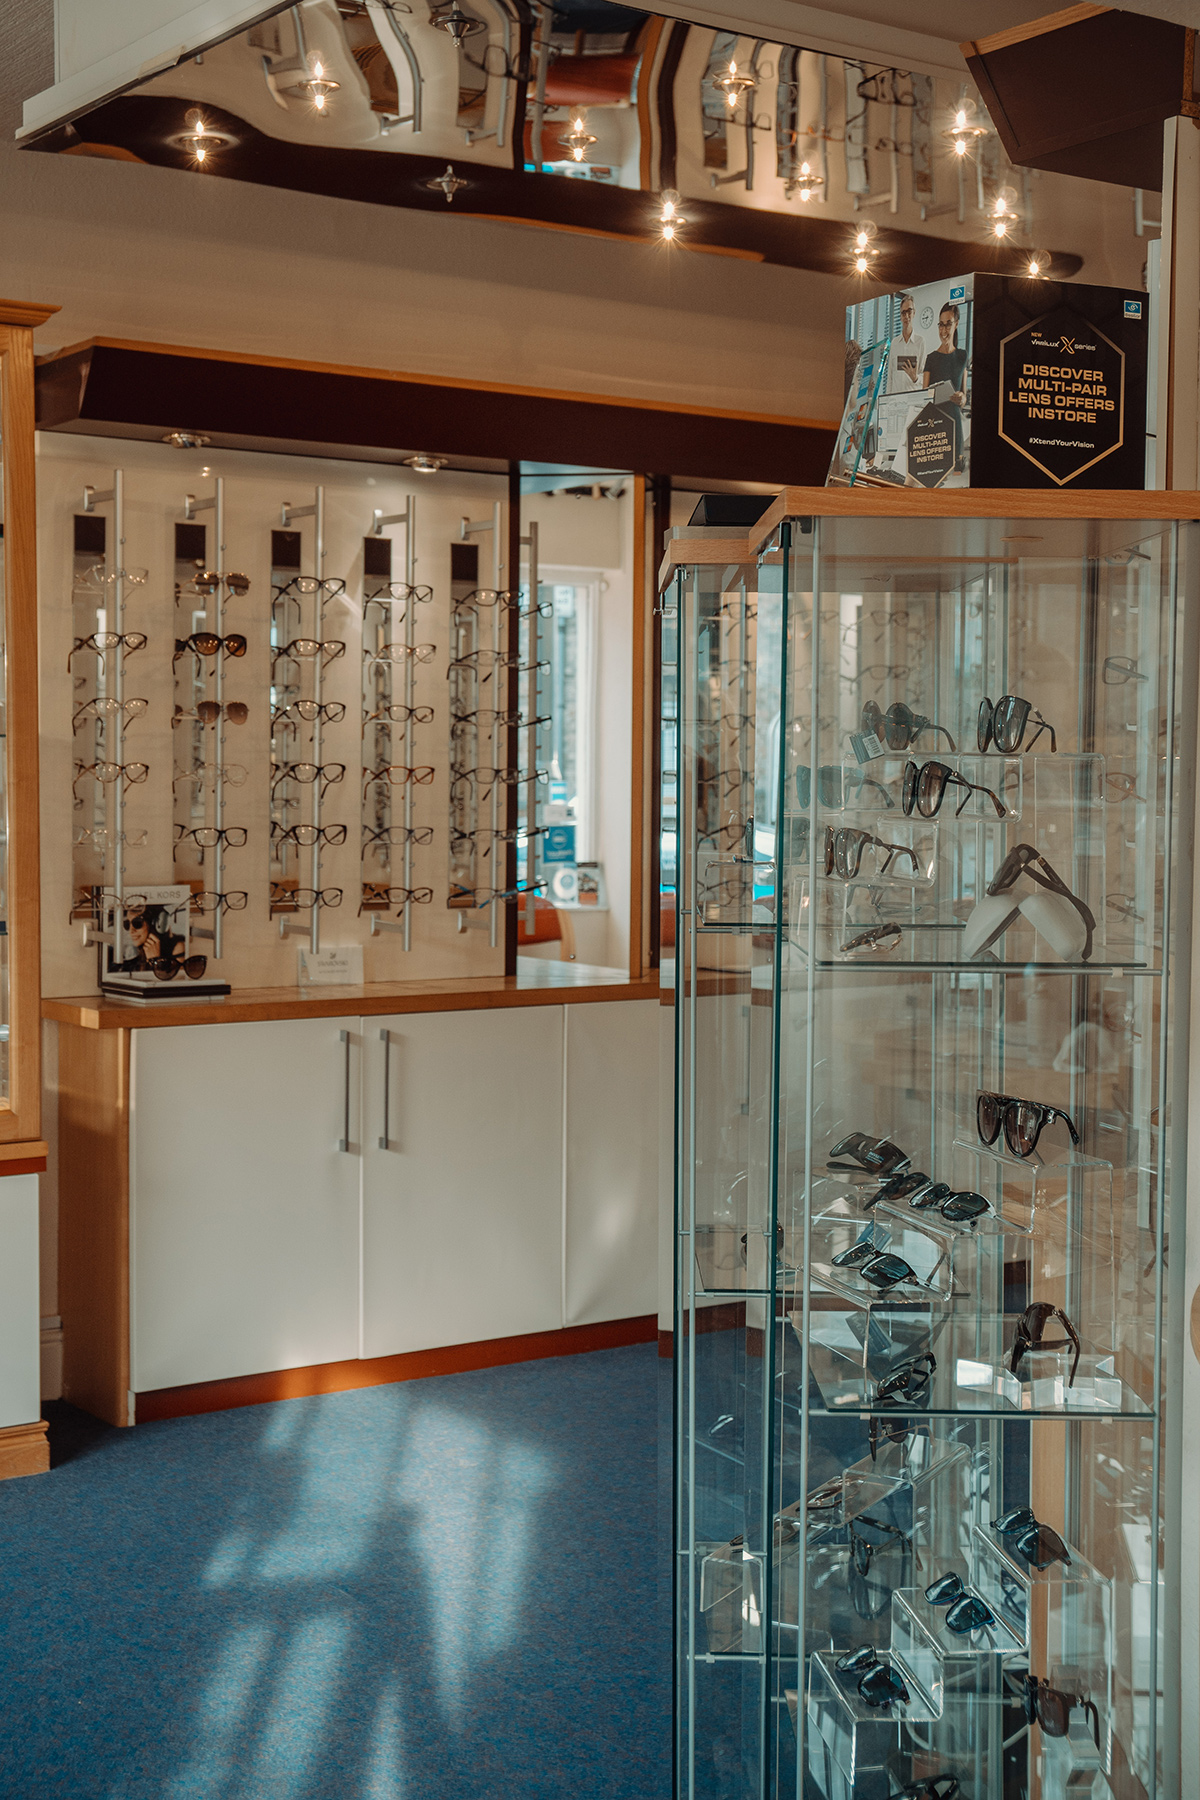 Sydney Goldwyn Opticians Shipley (Formerly Verity Opticians)